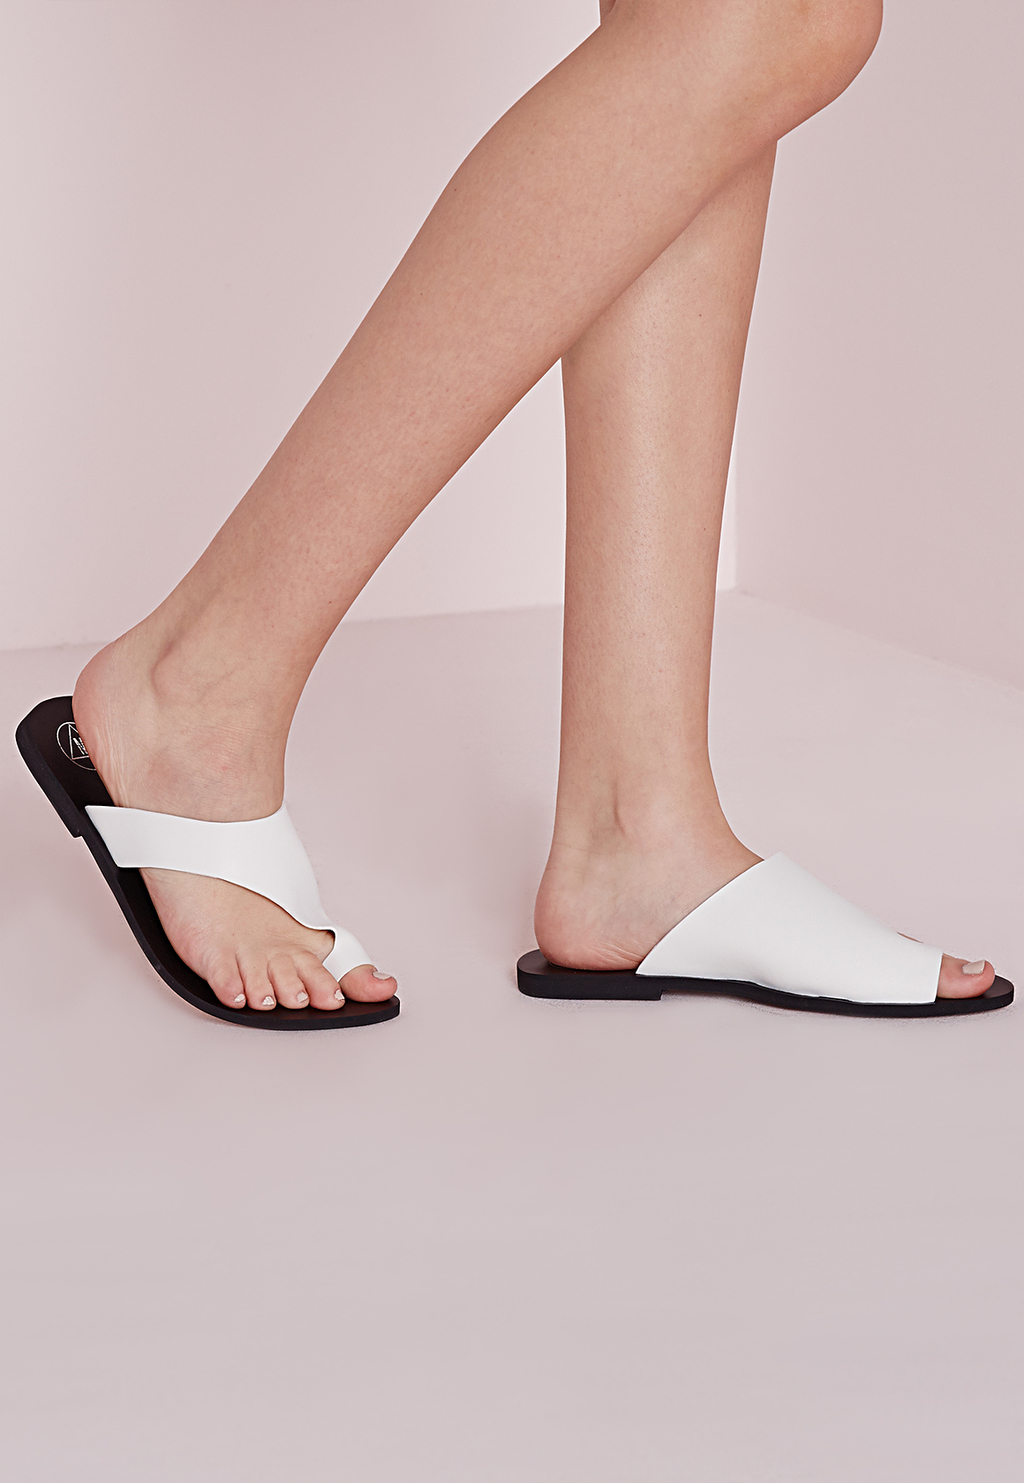 Asymmetric Toe Flat Sandals White, White - predominant colour: white; material: faux leather; heel height: flat; heel: standard; toe: toe thongs; style: slides; occasions: holiday; finish: plain; pattern: plain; season: s/s 2016